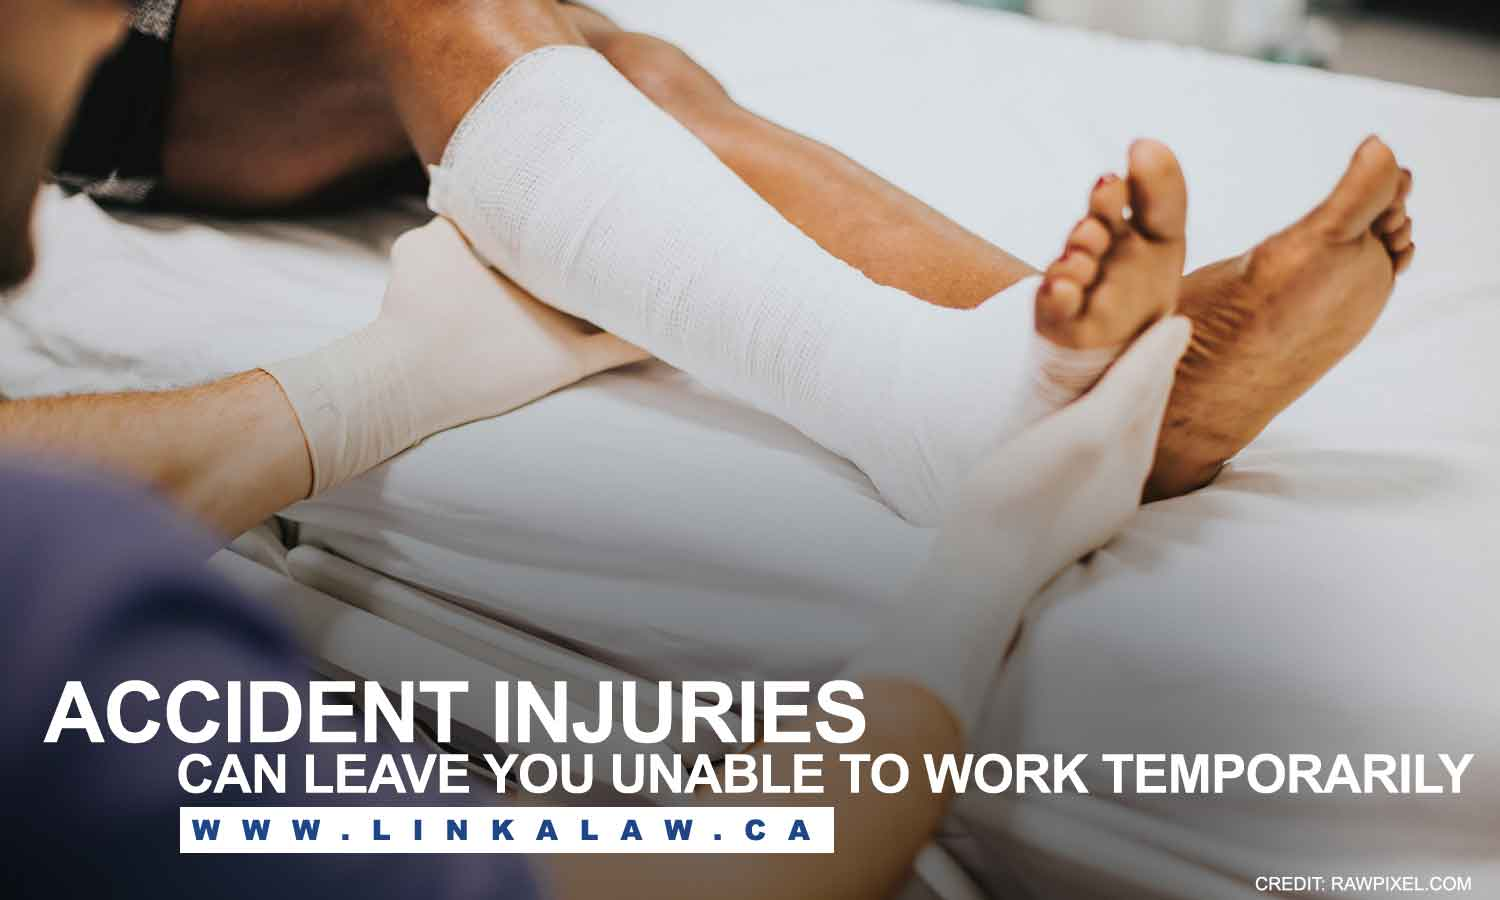 Accident injuries can leave you unable to work temporarily